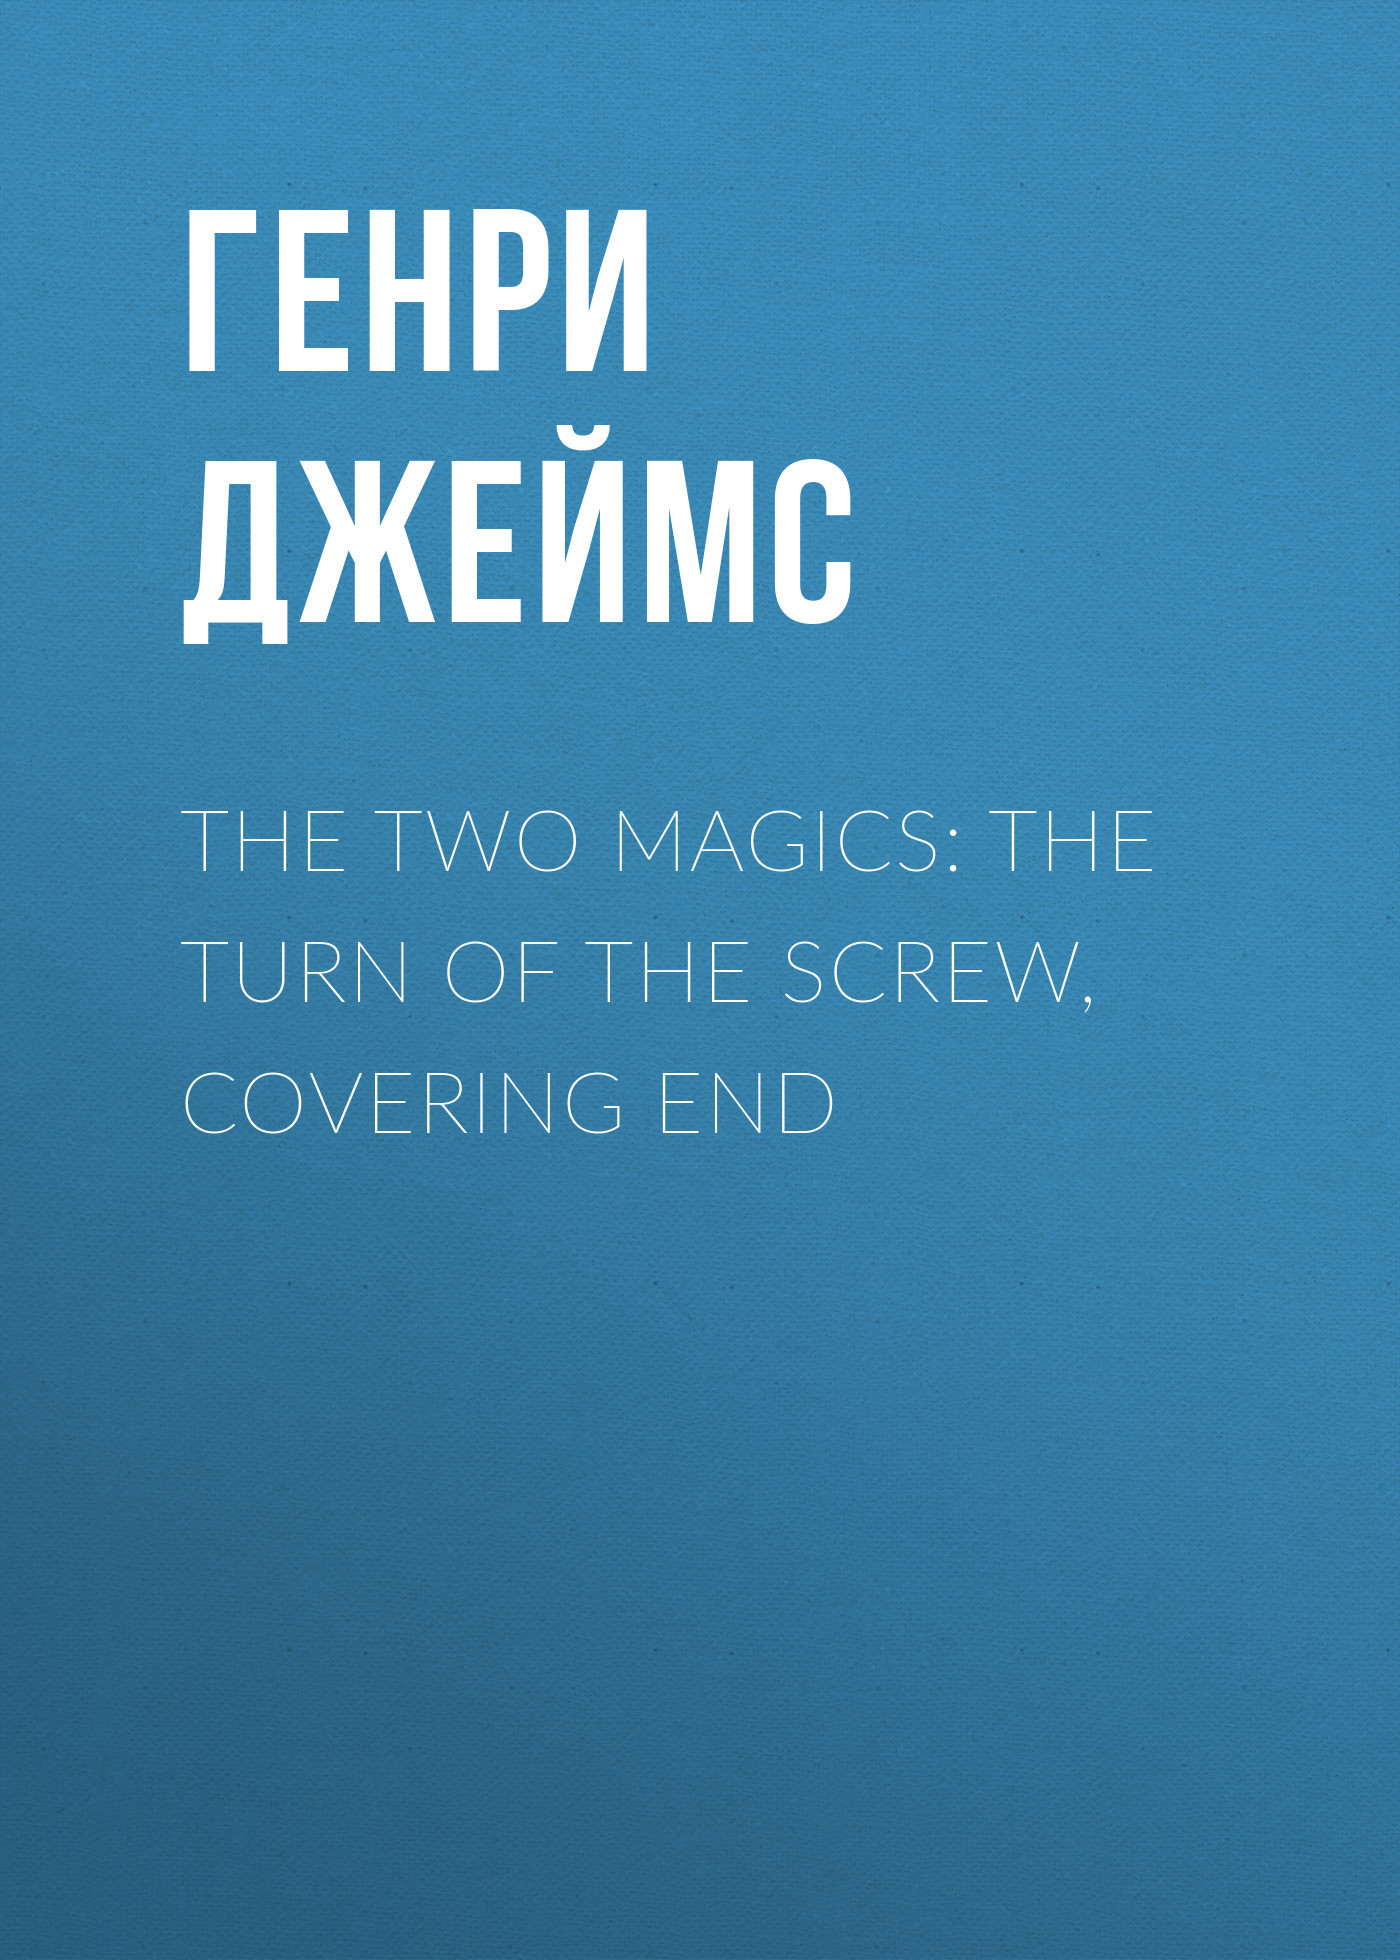 Генри Джеймс The Two Magics: The Turn of the Screw, Covering End turn of the screw